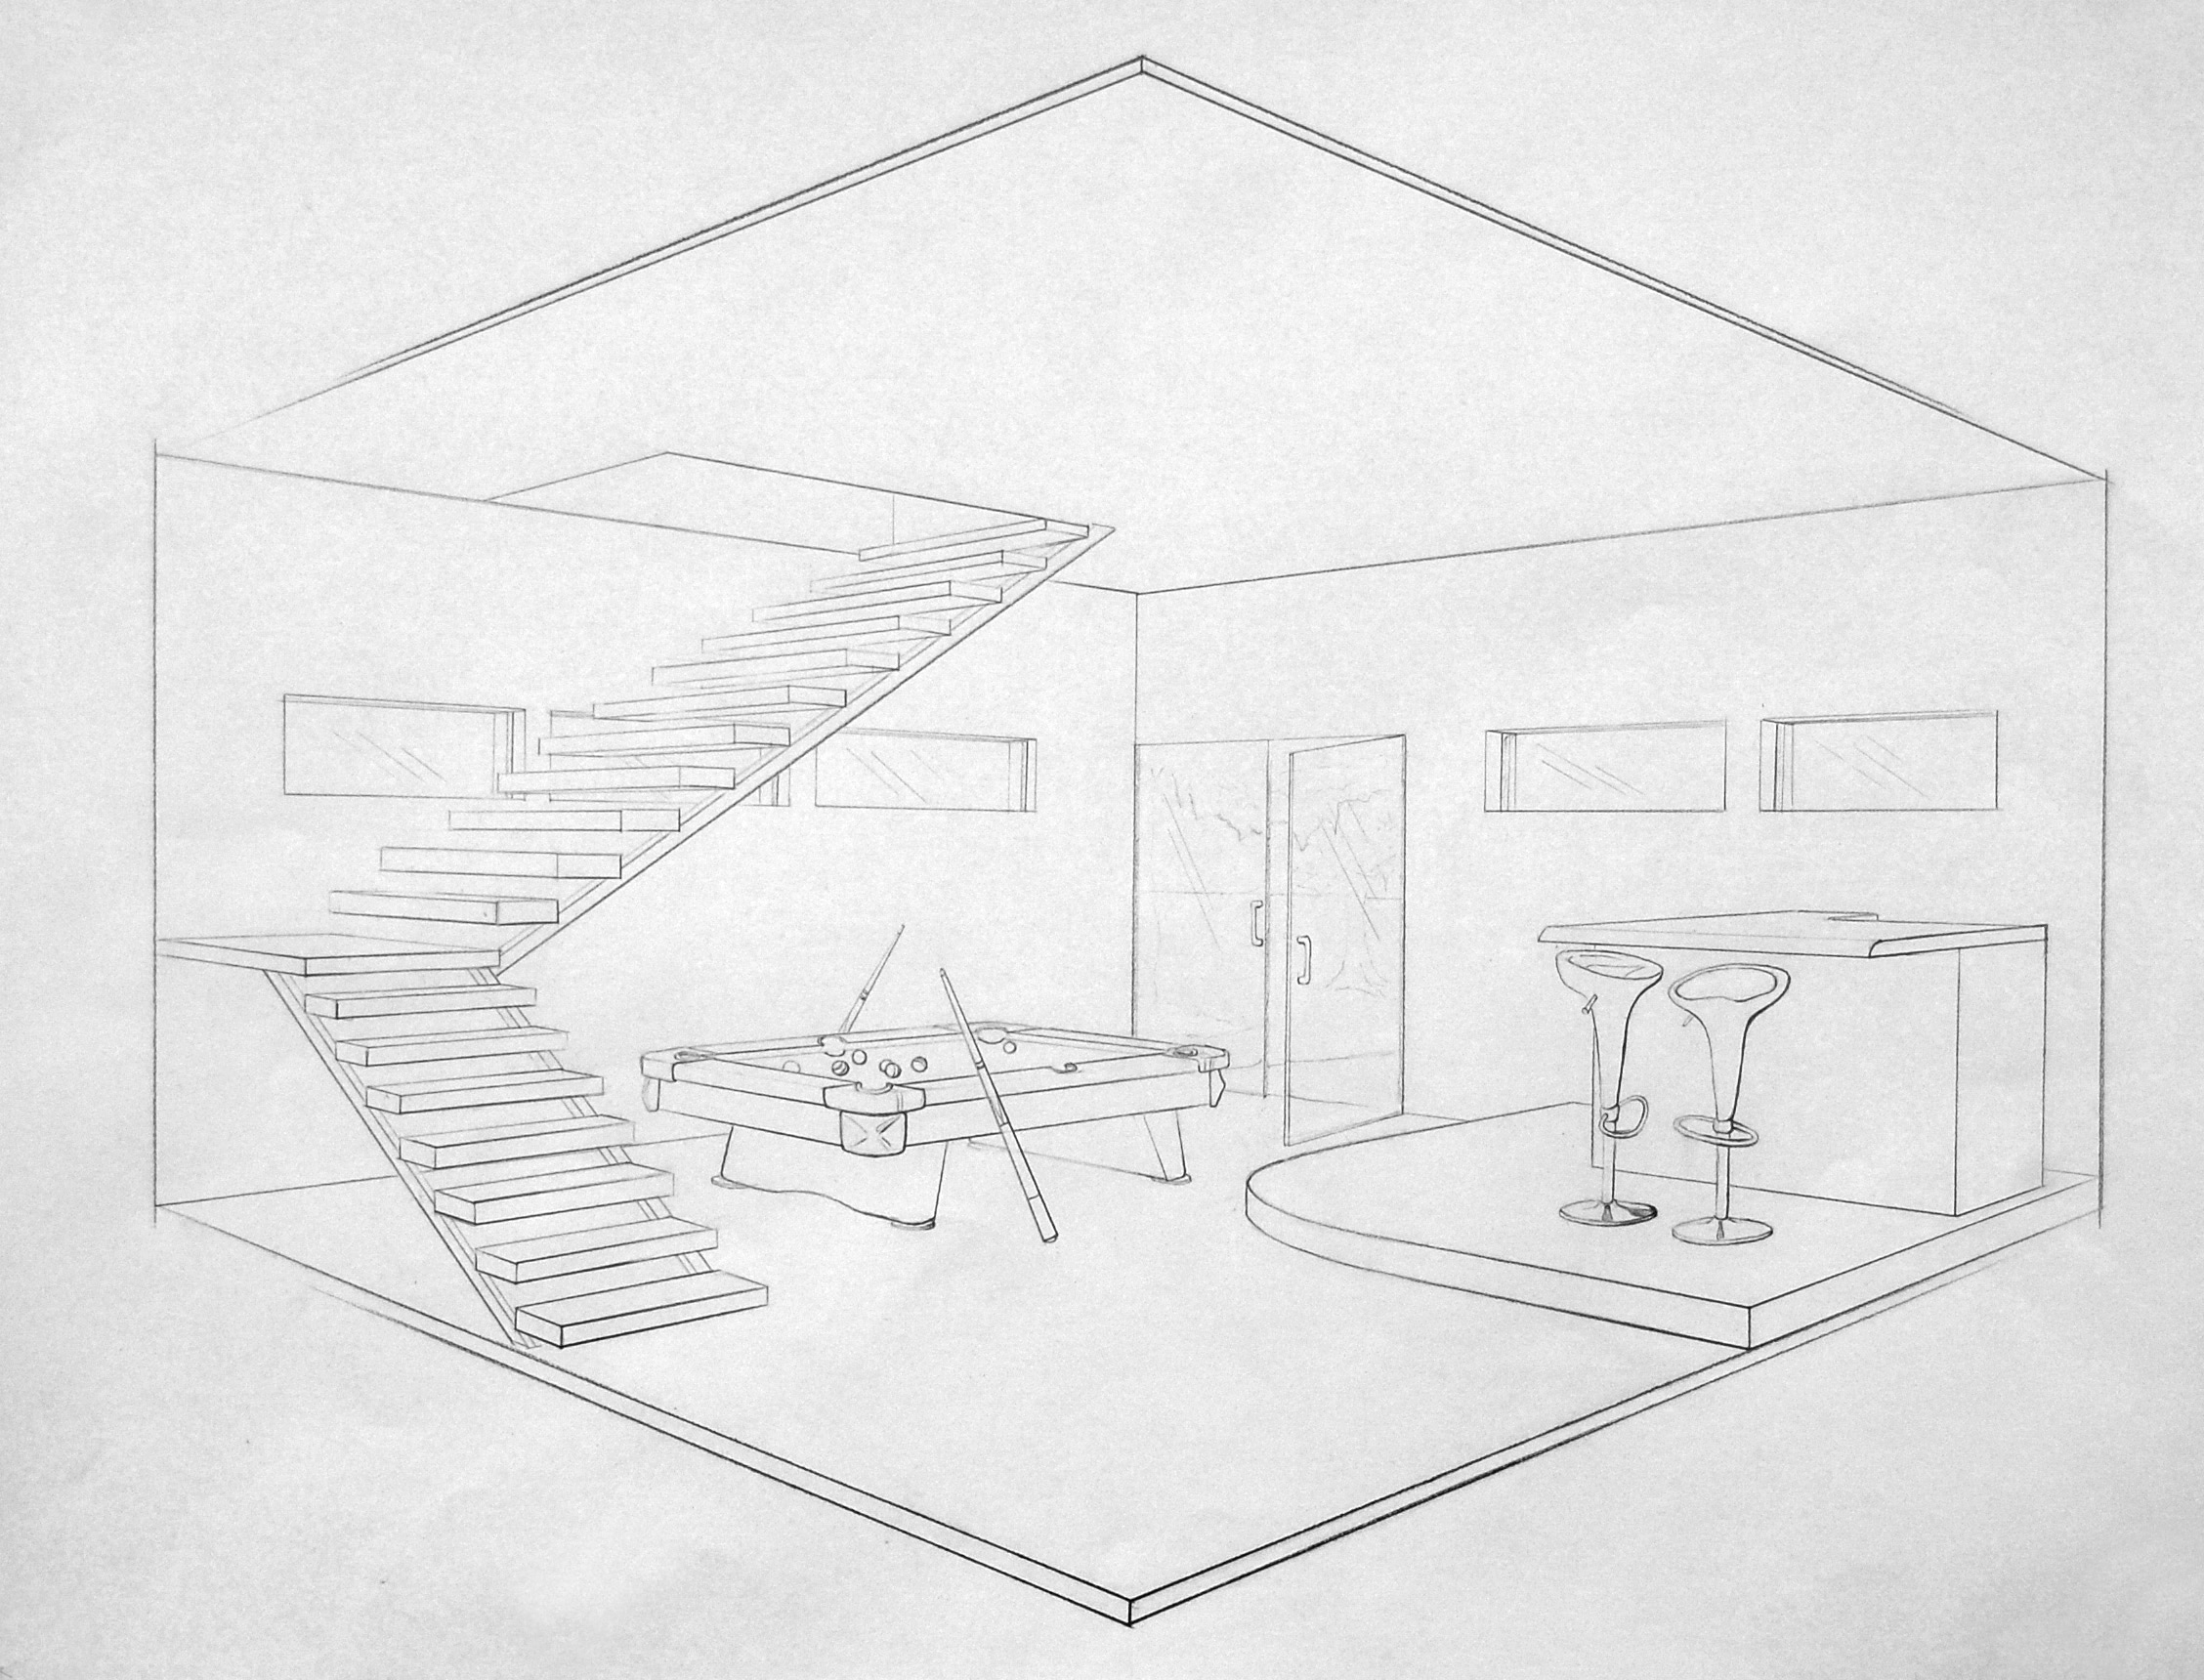 . Inventing an Interior Space to Explore 2 pt Perspective